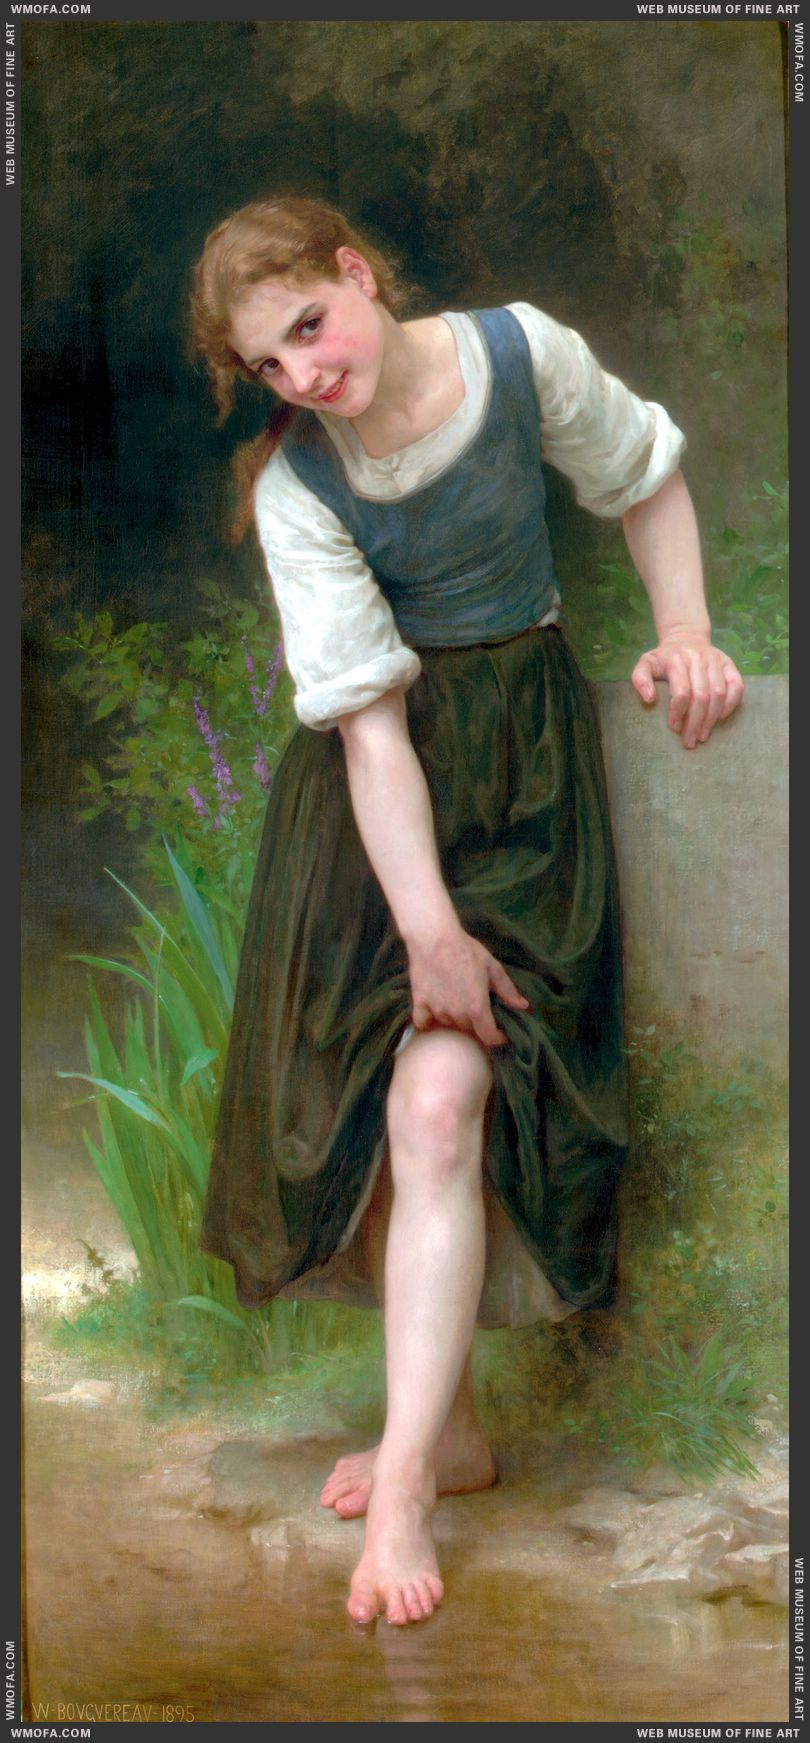 Le Gue - The Ford 1895 by Bouguereau, William